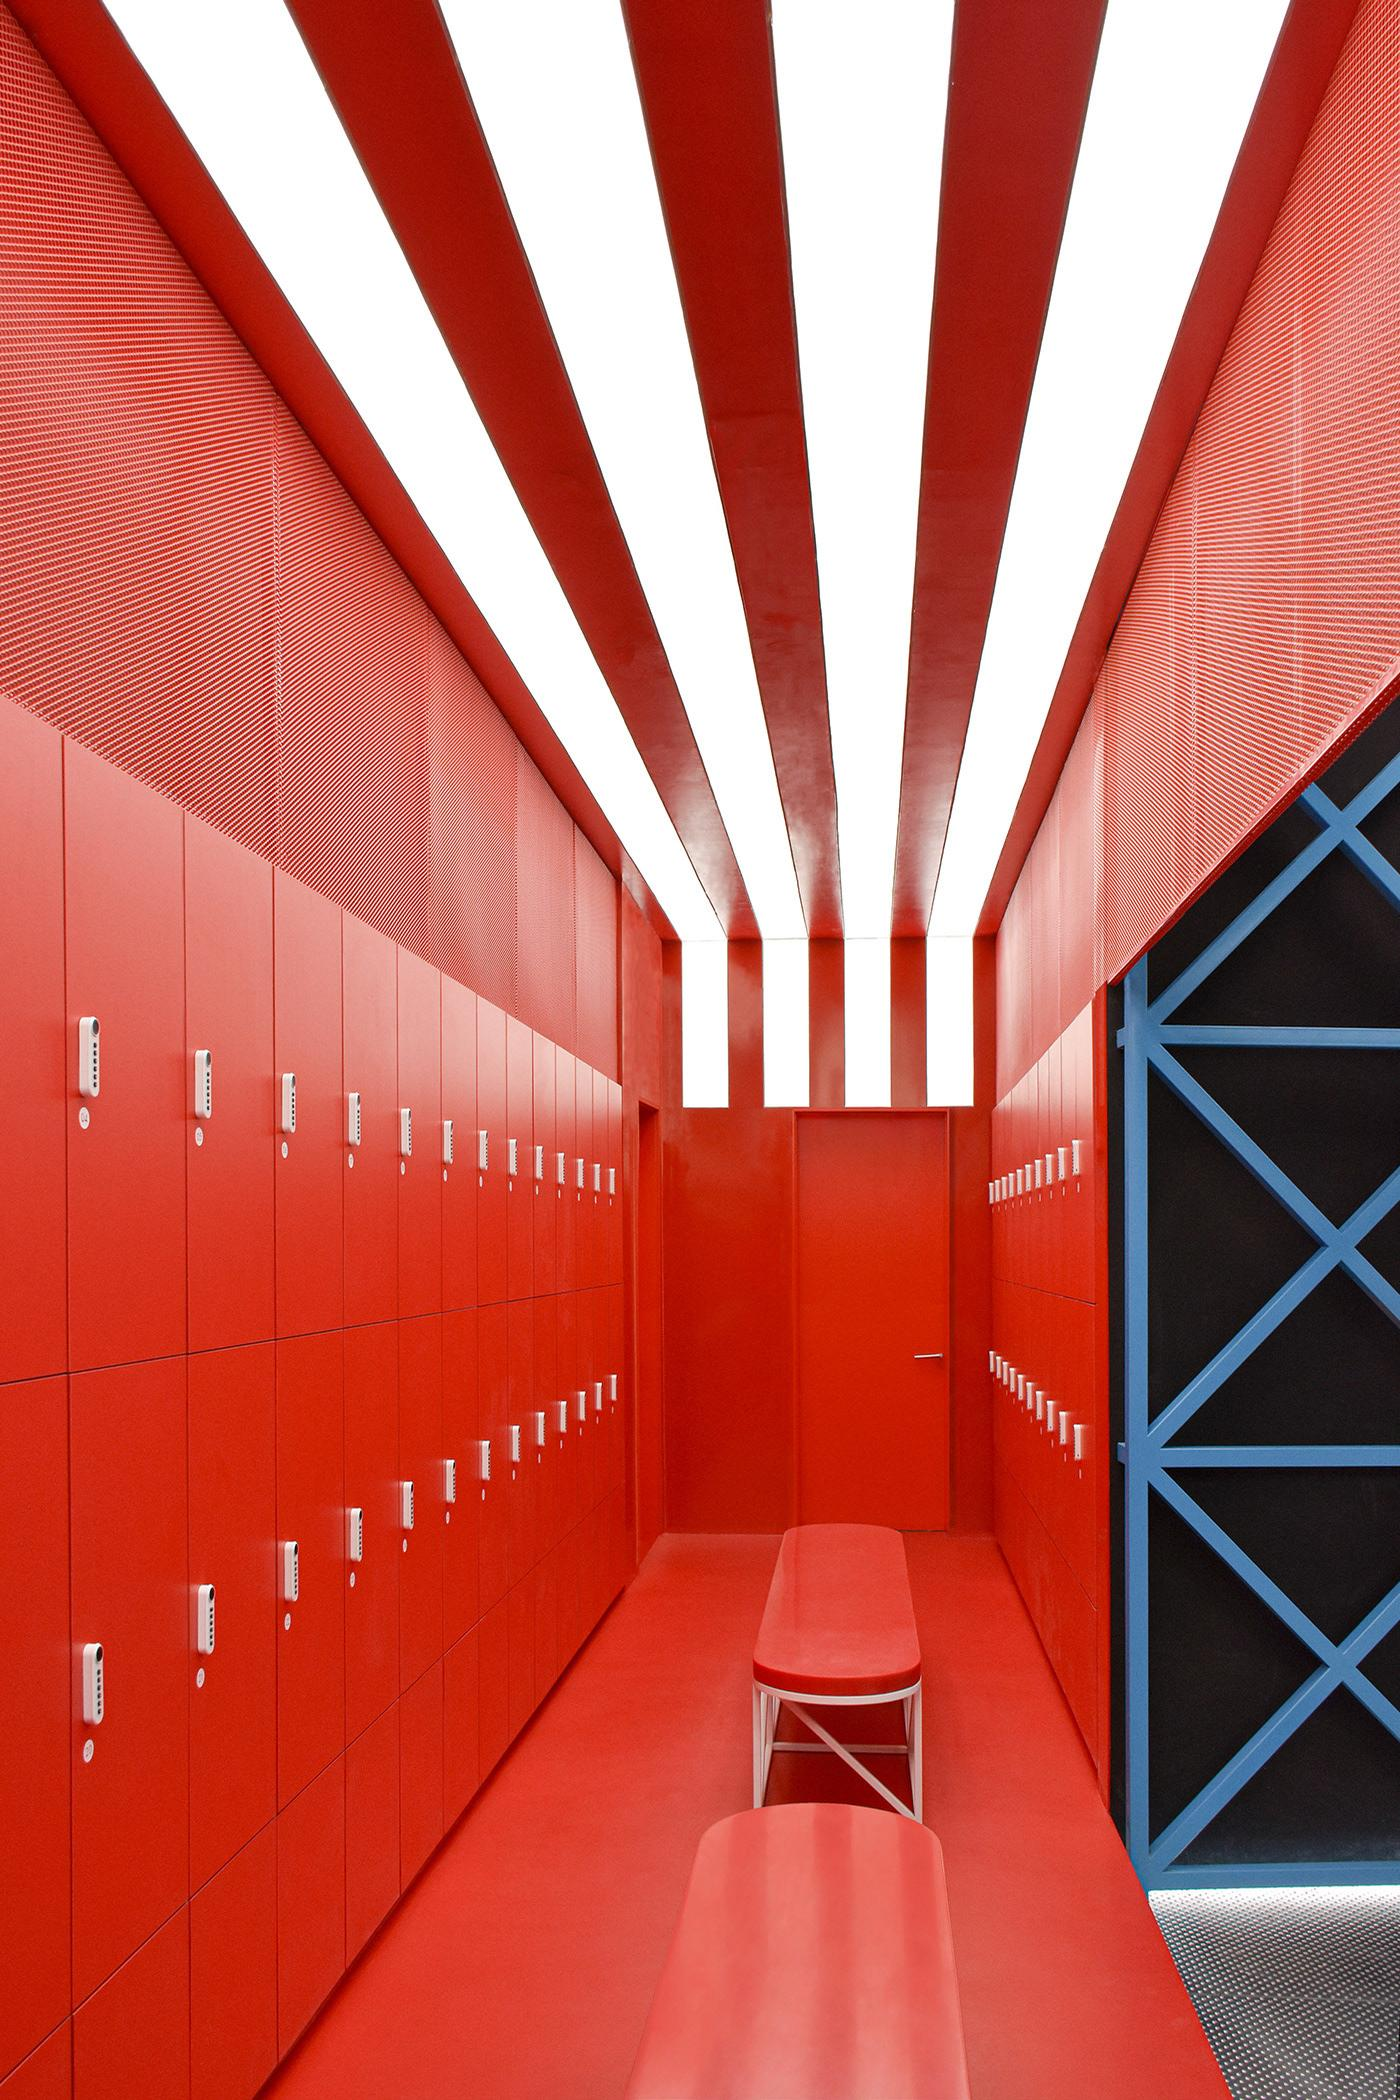 Strip lights provide contrast in the locker room